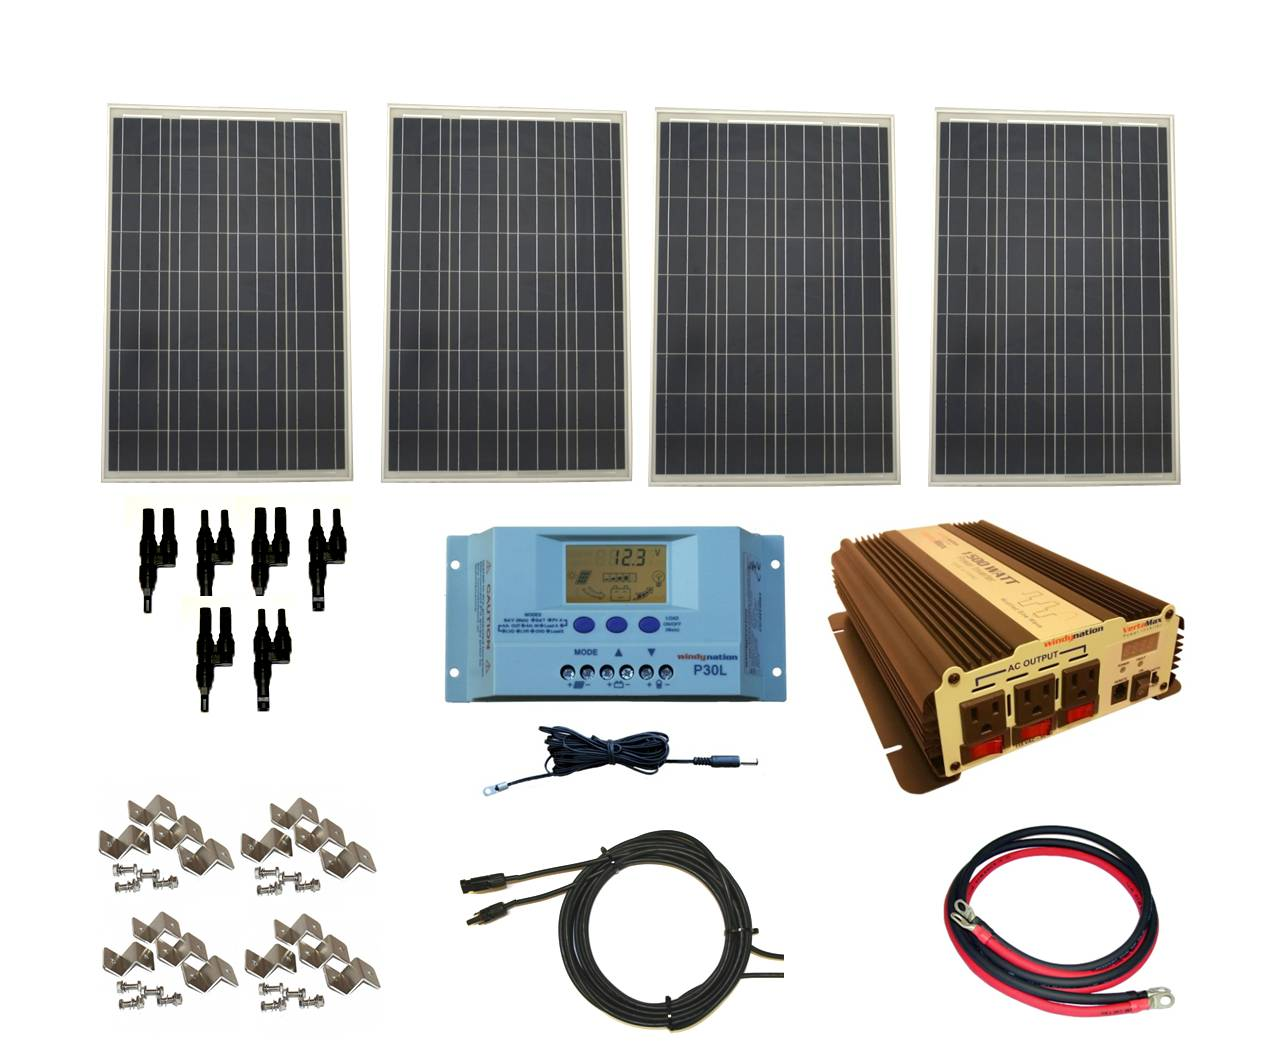 110 Volt Wiring Diagrams Complete 400 Watt Solar Panel Kit With Vertamax Power